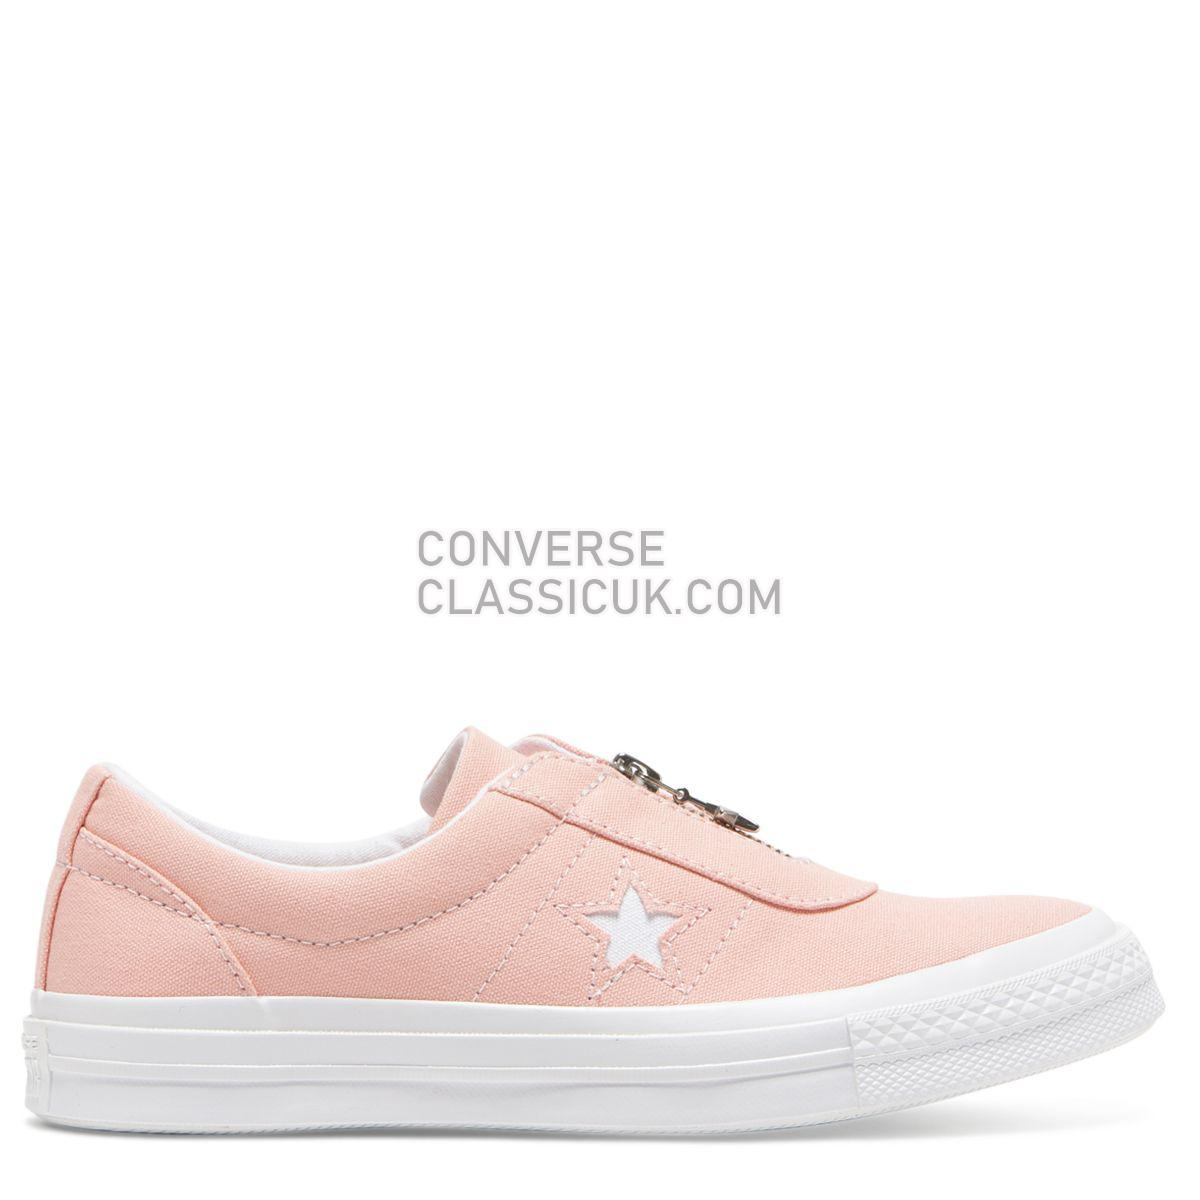 Converse One Star Sunbaked Slip Low Top Bleached Coral Womens 564204 Bleached Coral/White/White Shoes